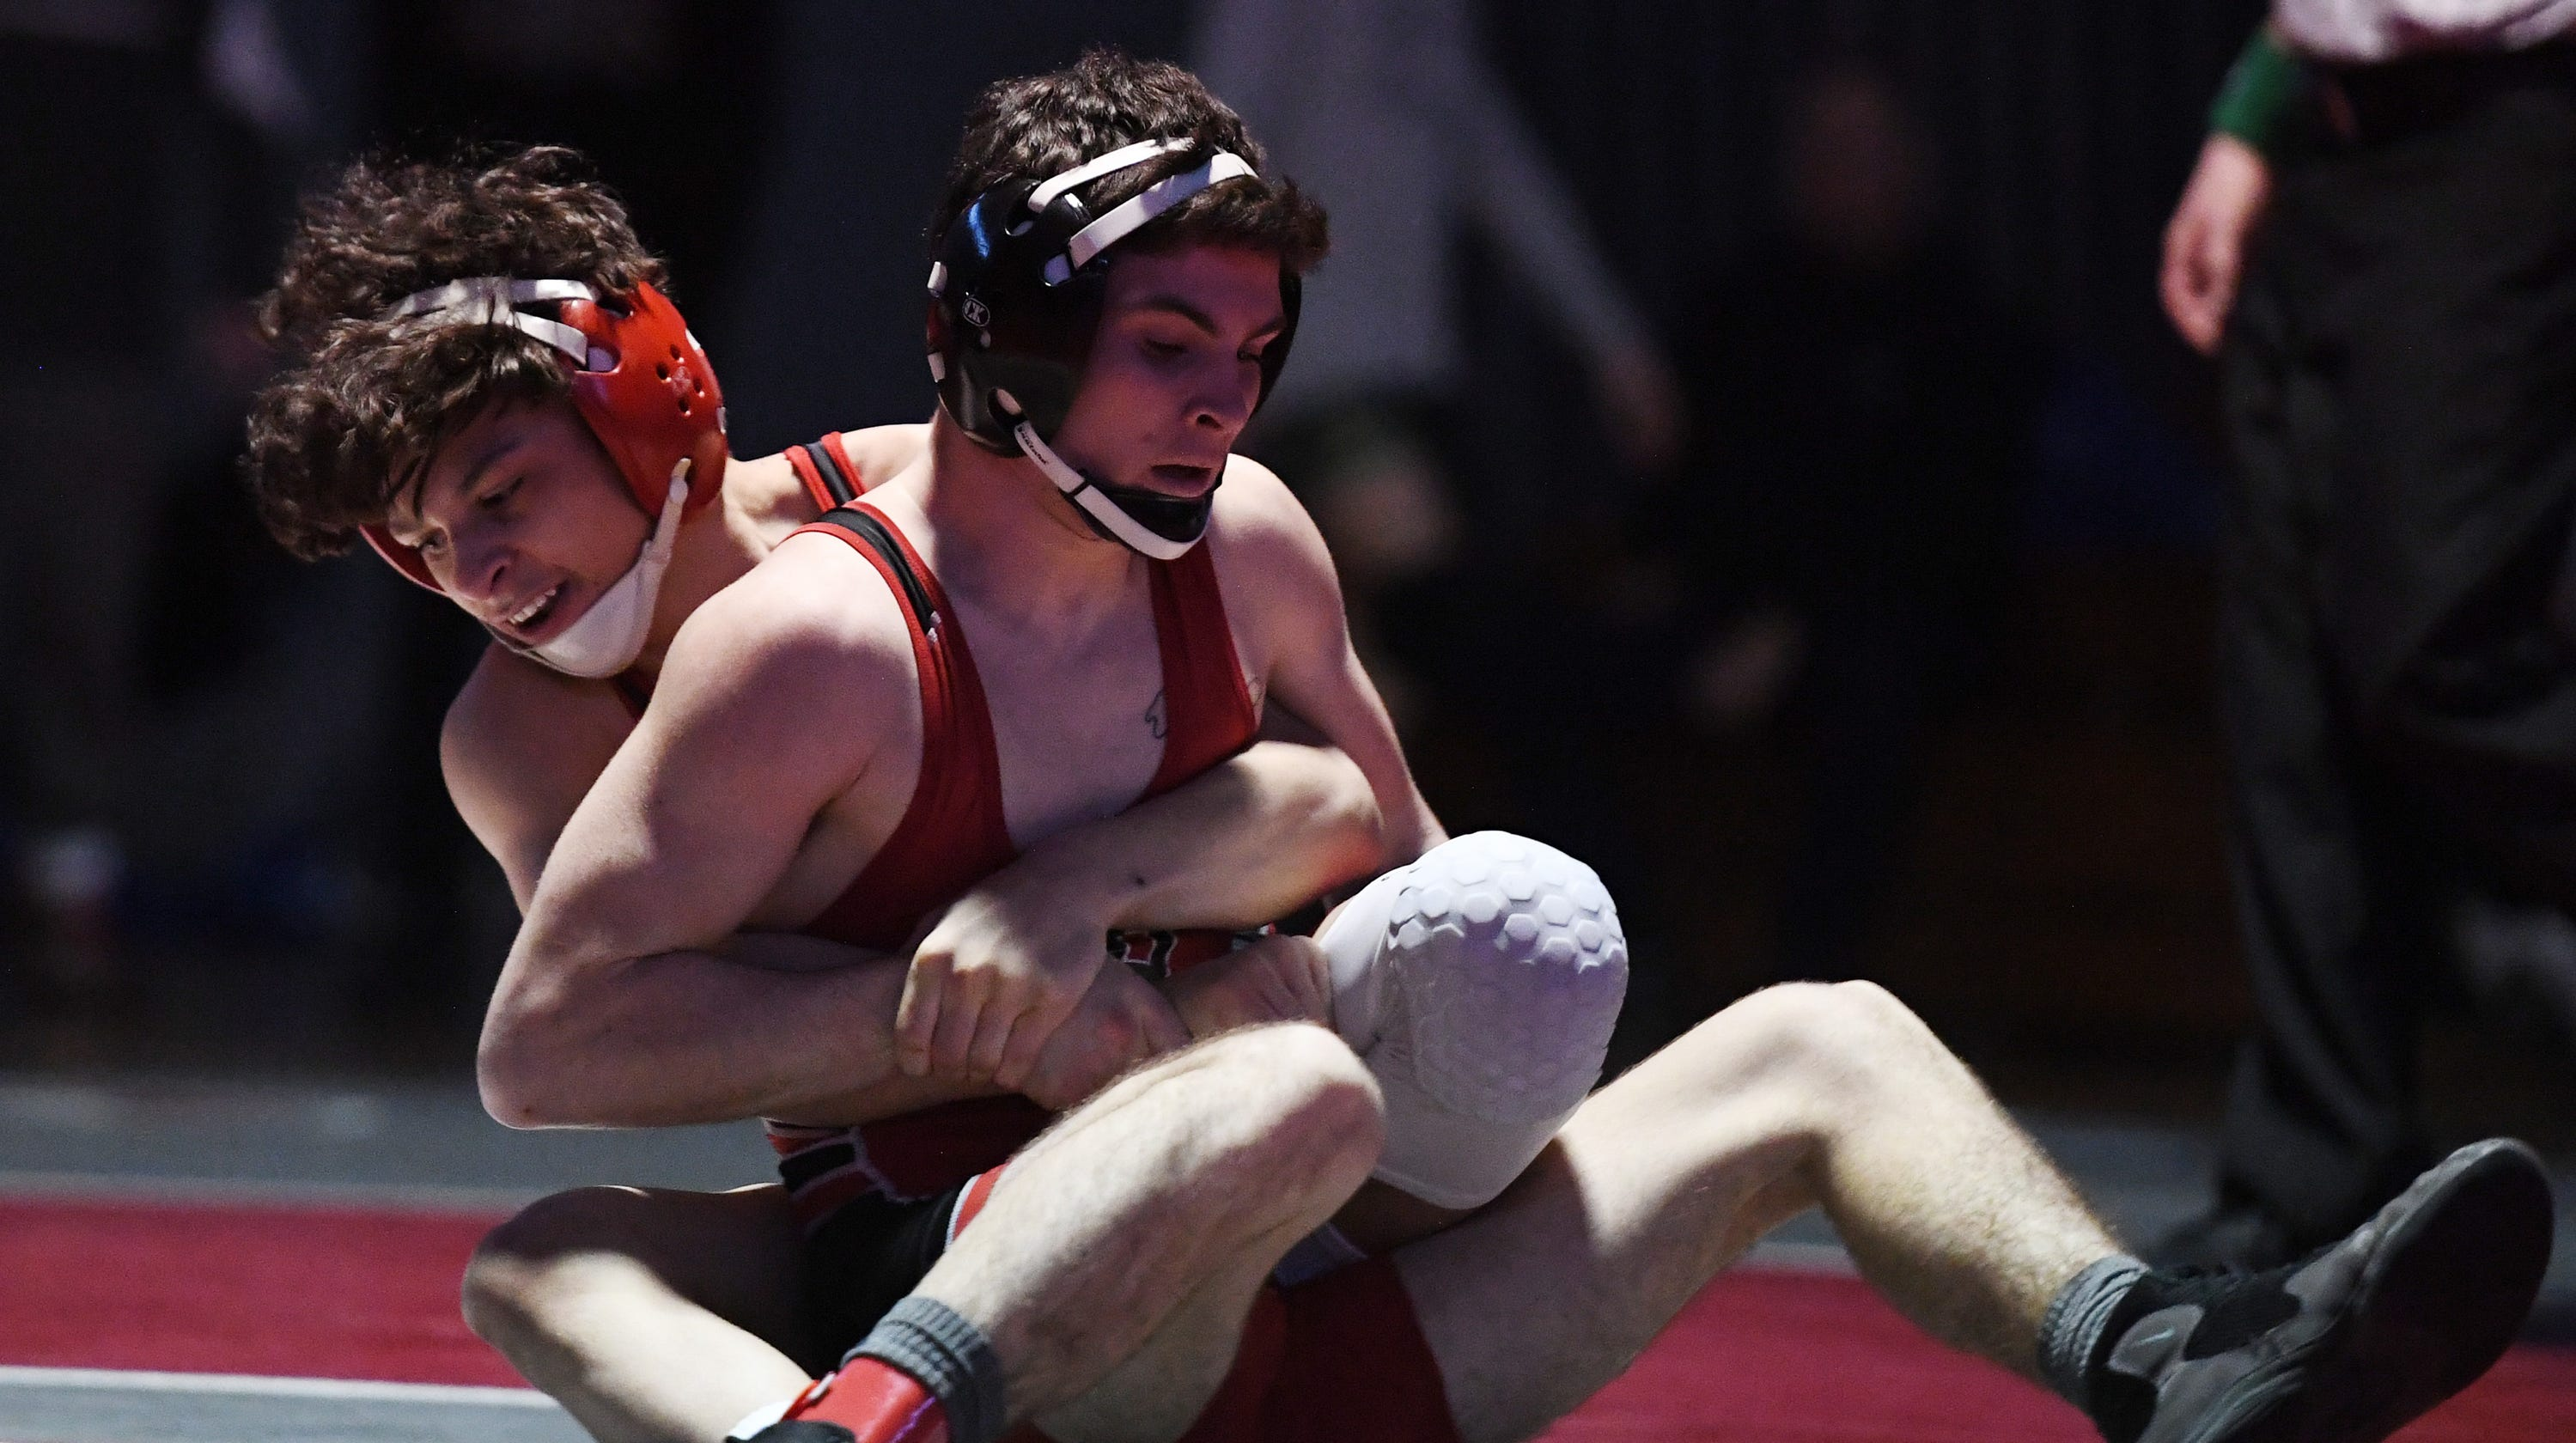 NJ wrestling: District results for Feb  16 in North Jersey